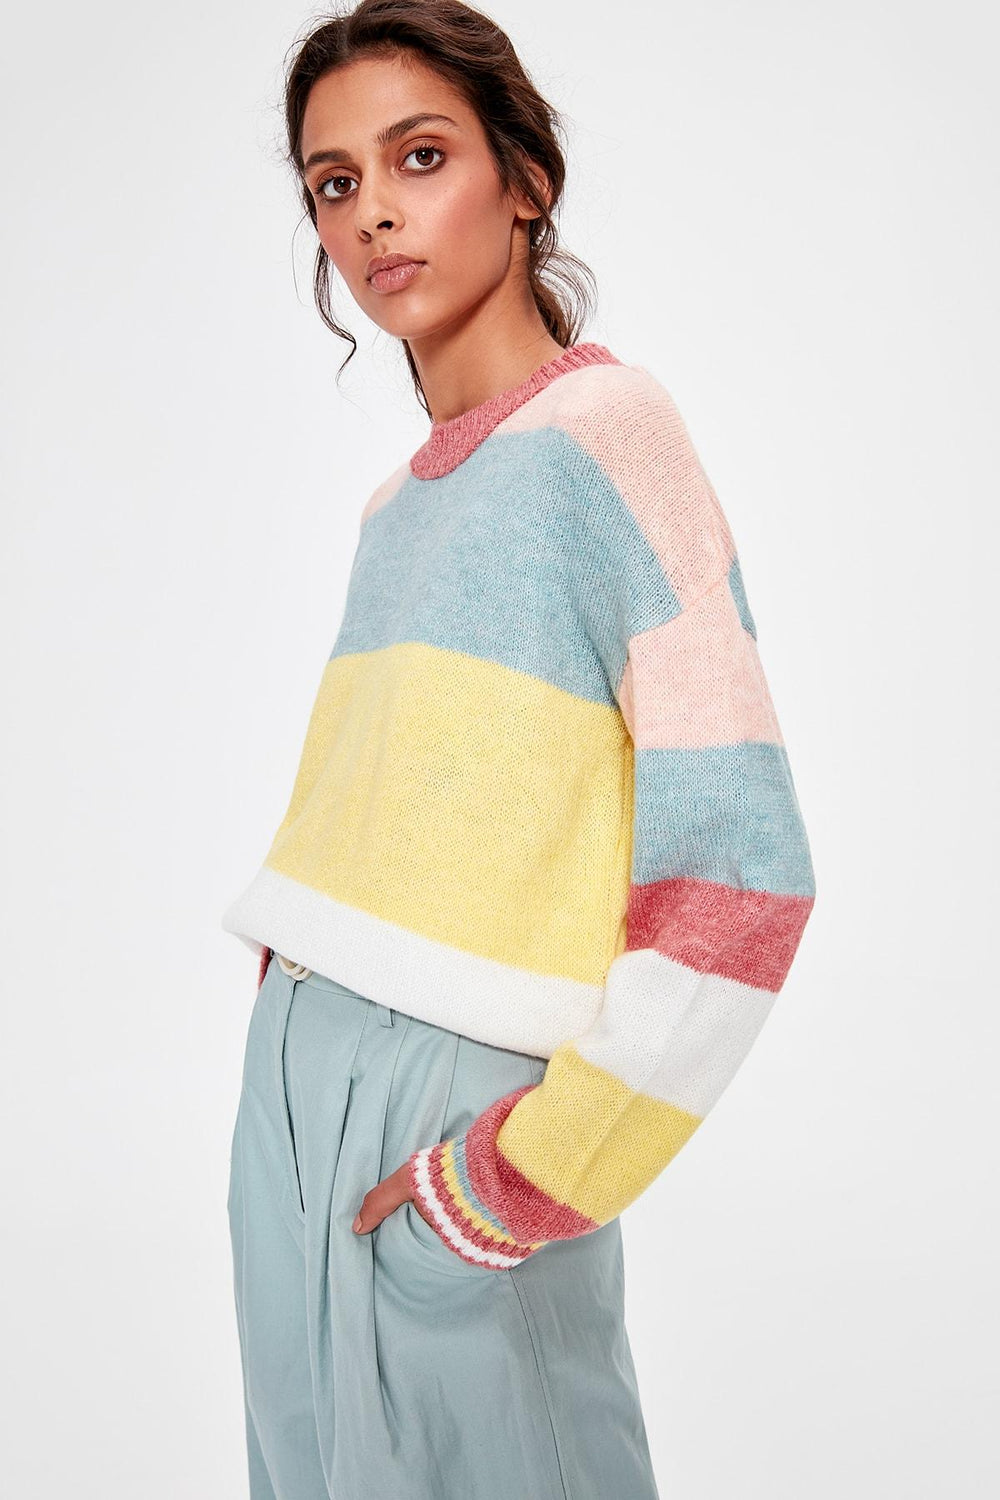 Pink Color Block Sweater Pullover - Top Maxy